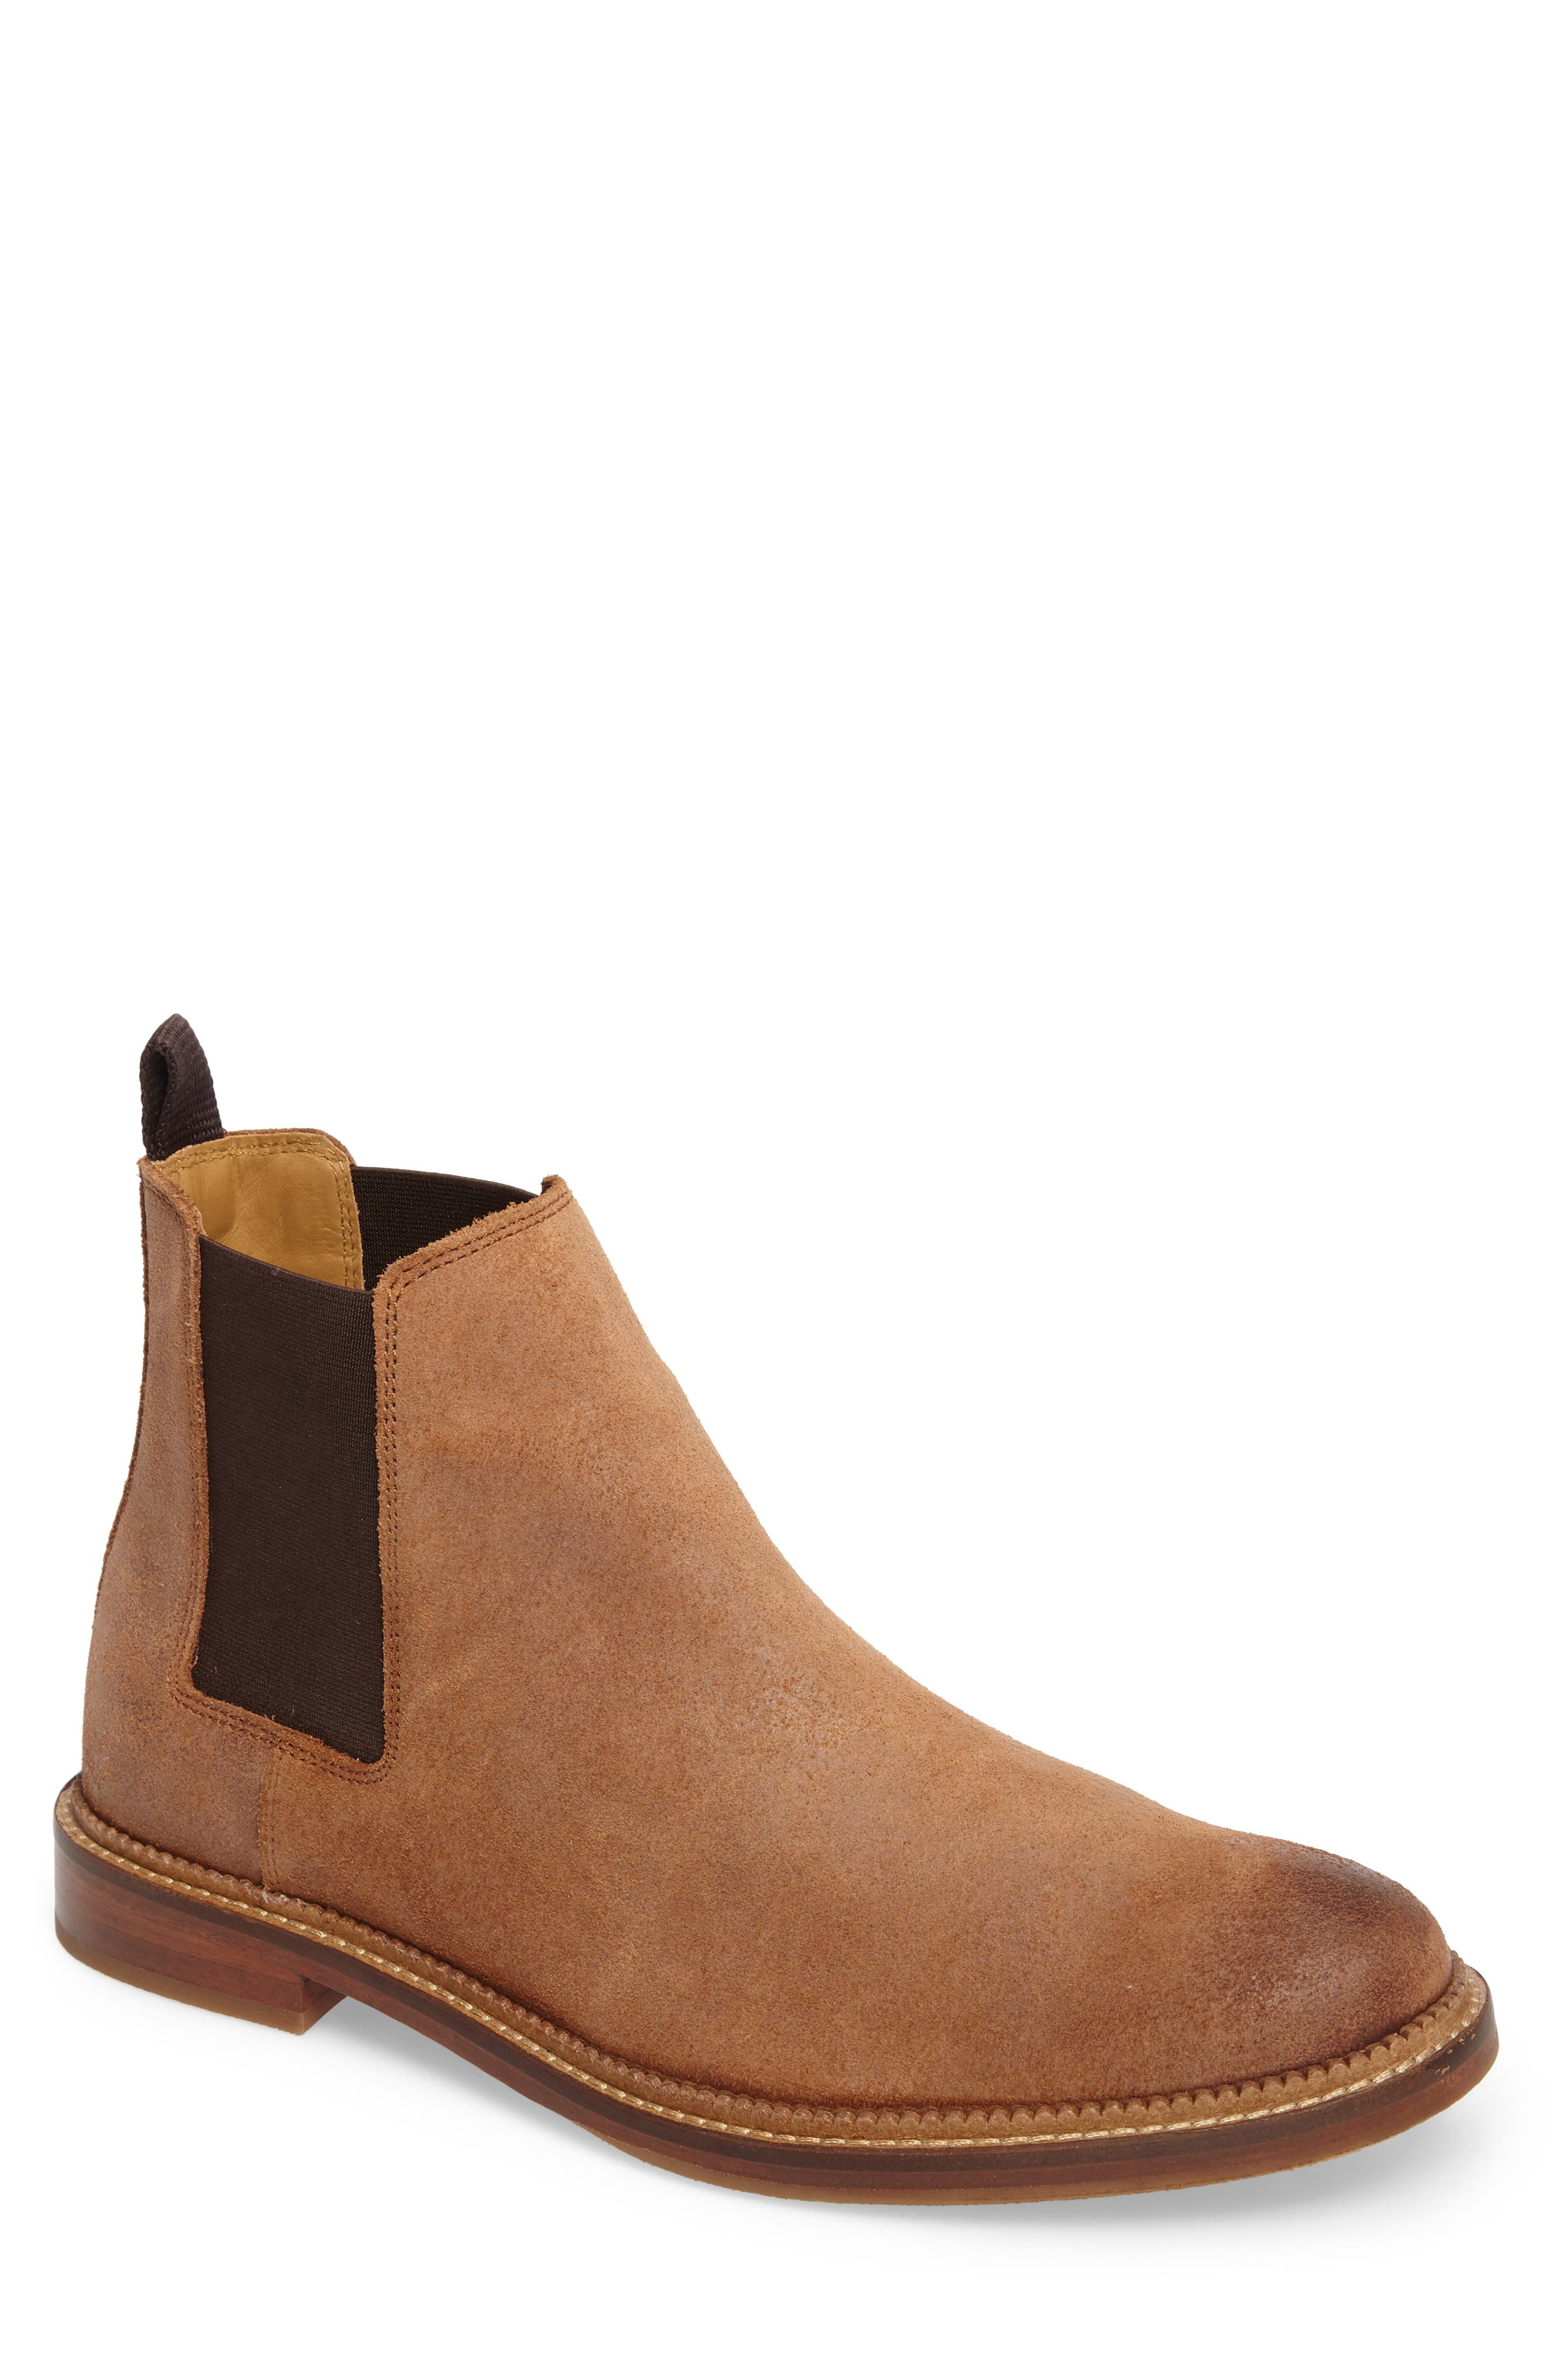 J SHOES Jamie Chelsea Boot (Men)